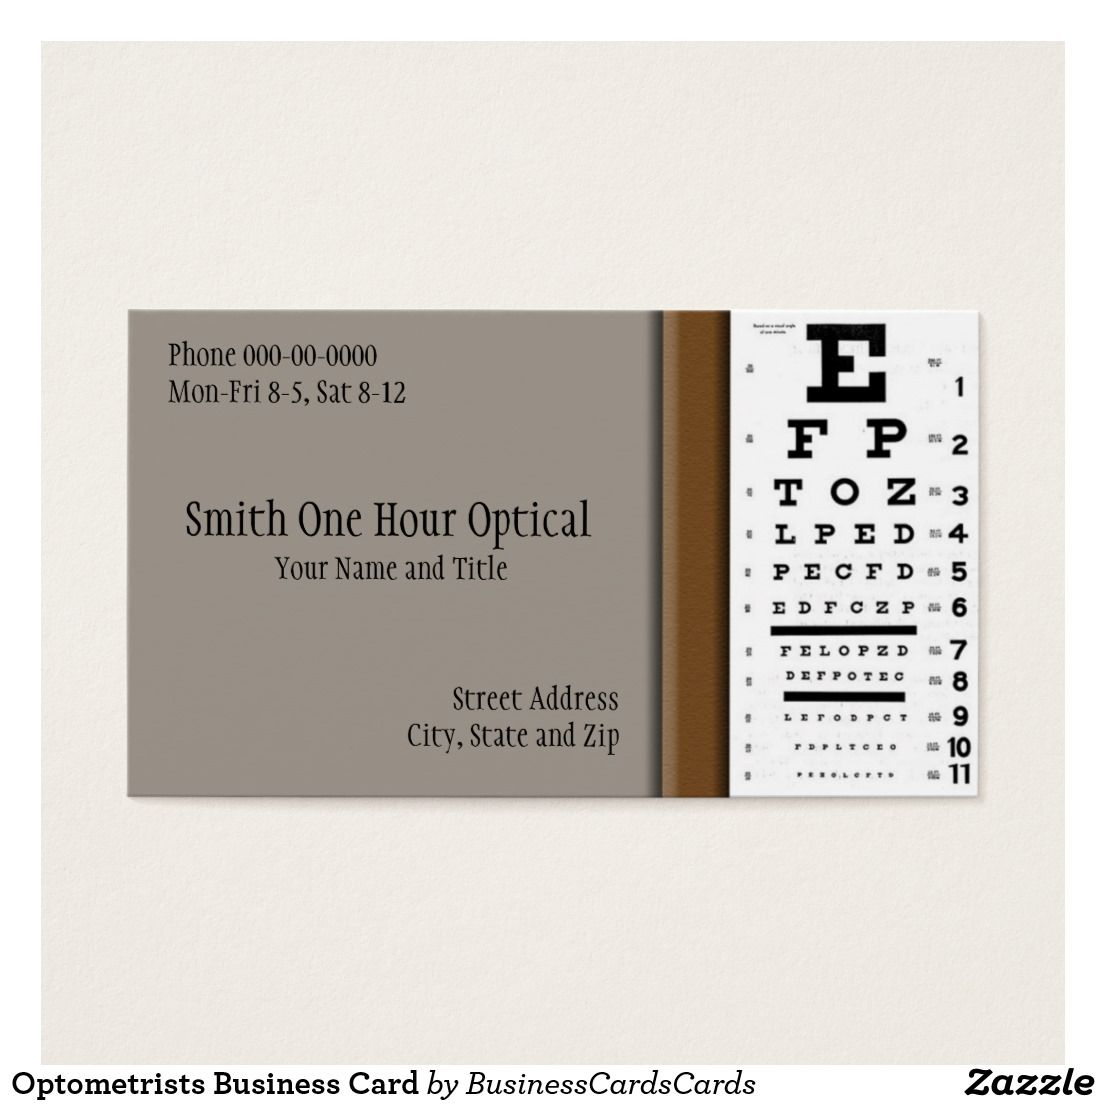 Optometrists Business Card Zazzle Com In 2021 Doctor Business Cards Optometrist Business Card Design